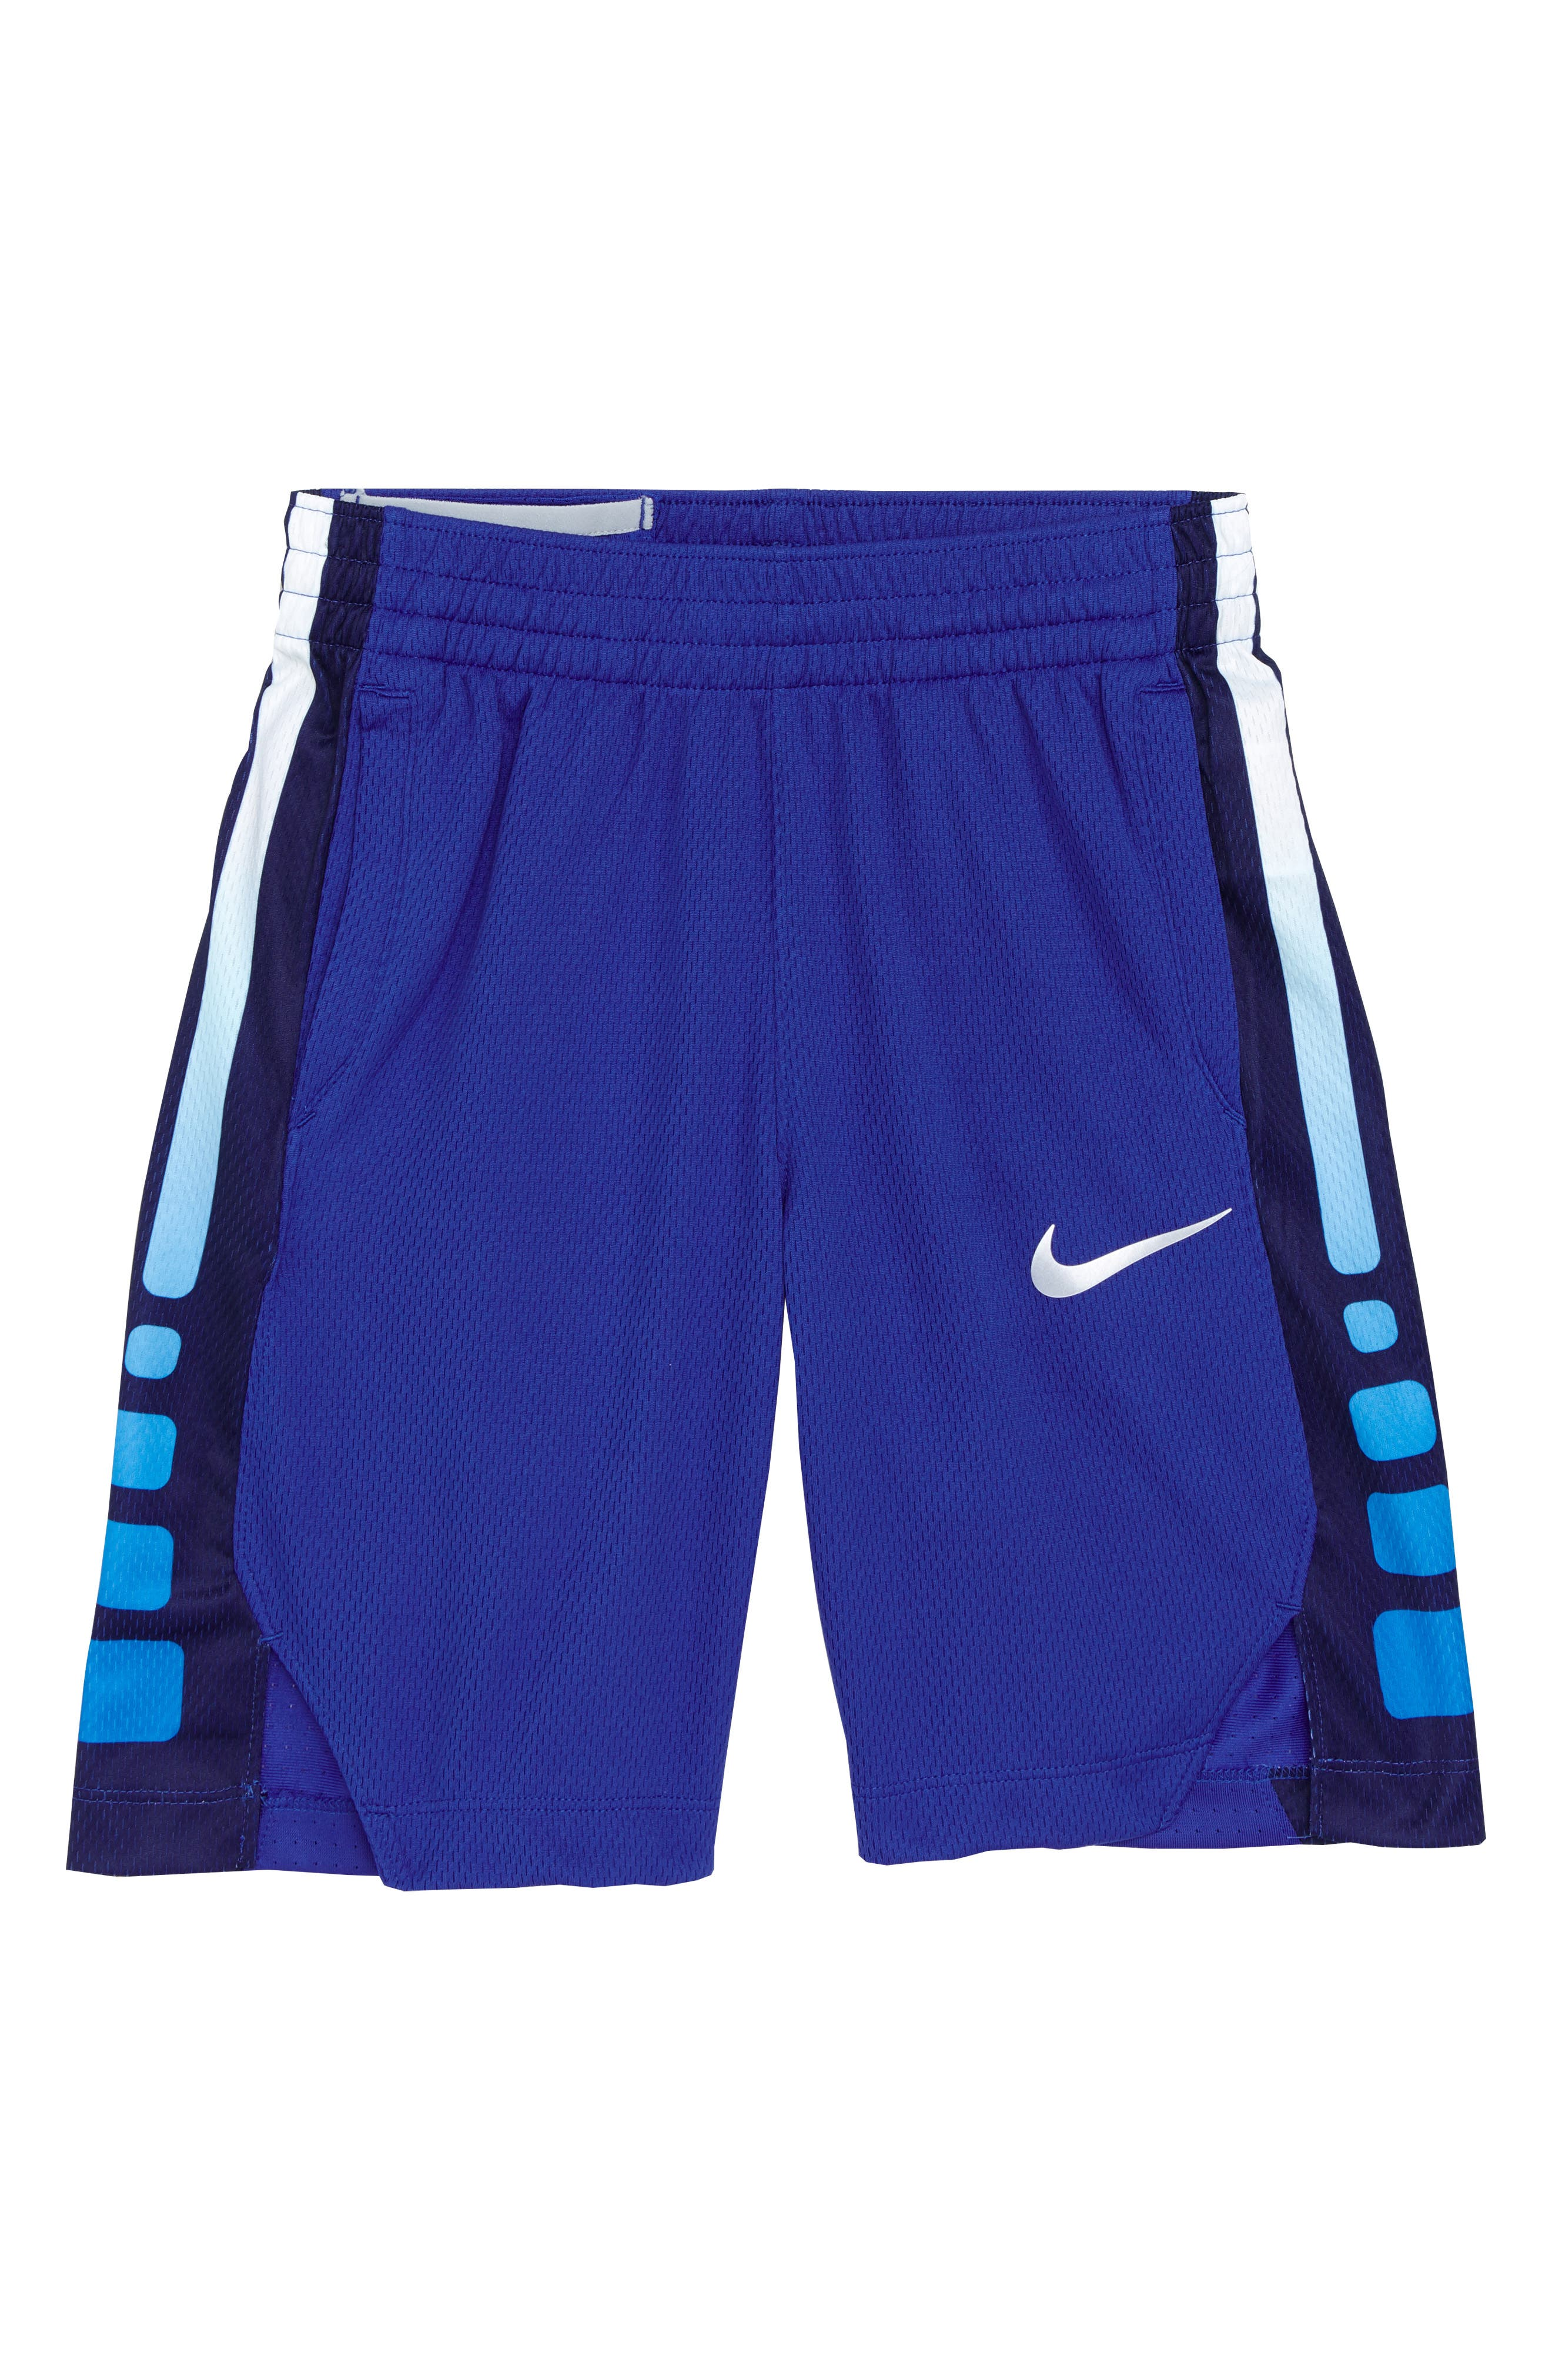 Dry Elite Basketball Shorts,                         Main,                         color, Game Royal/ White